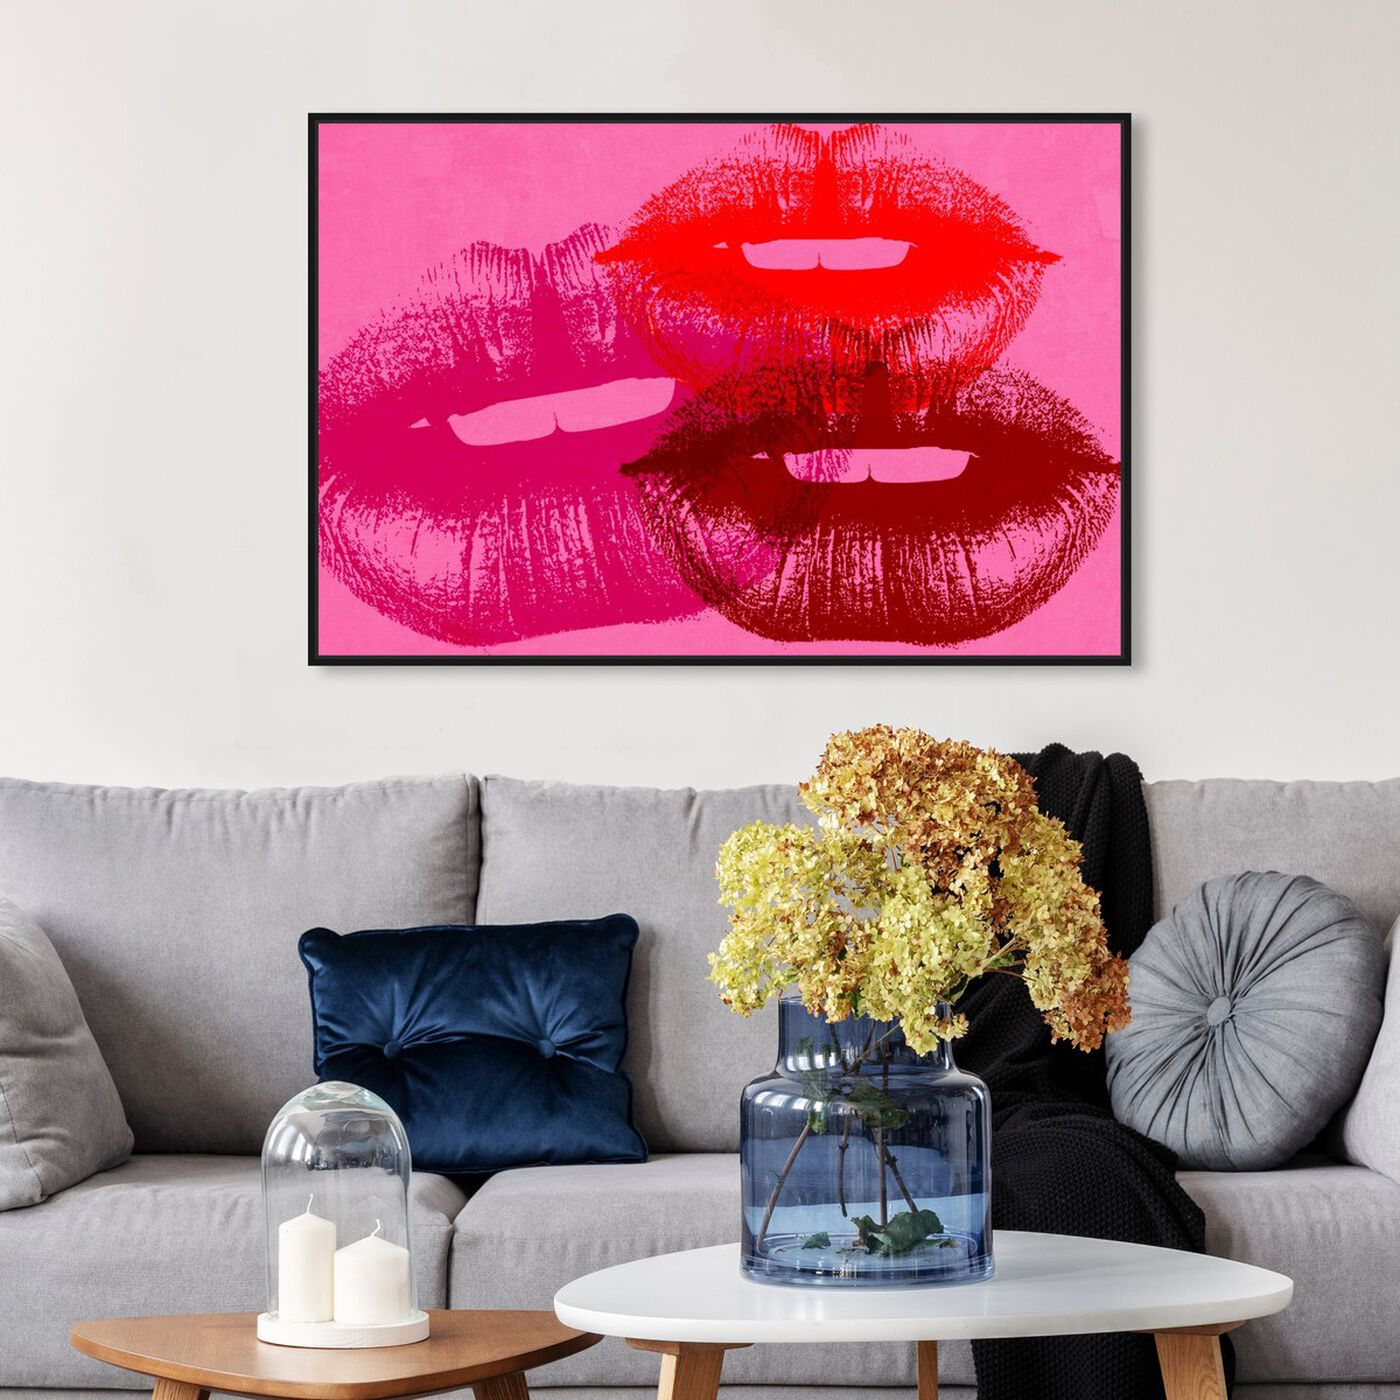 Hanging view of Smooch featuring fashion and glam and lips art.